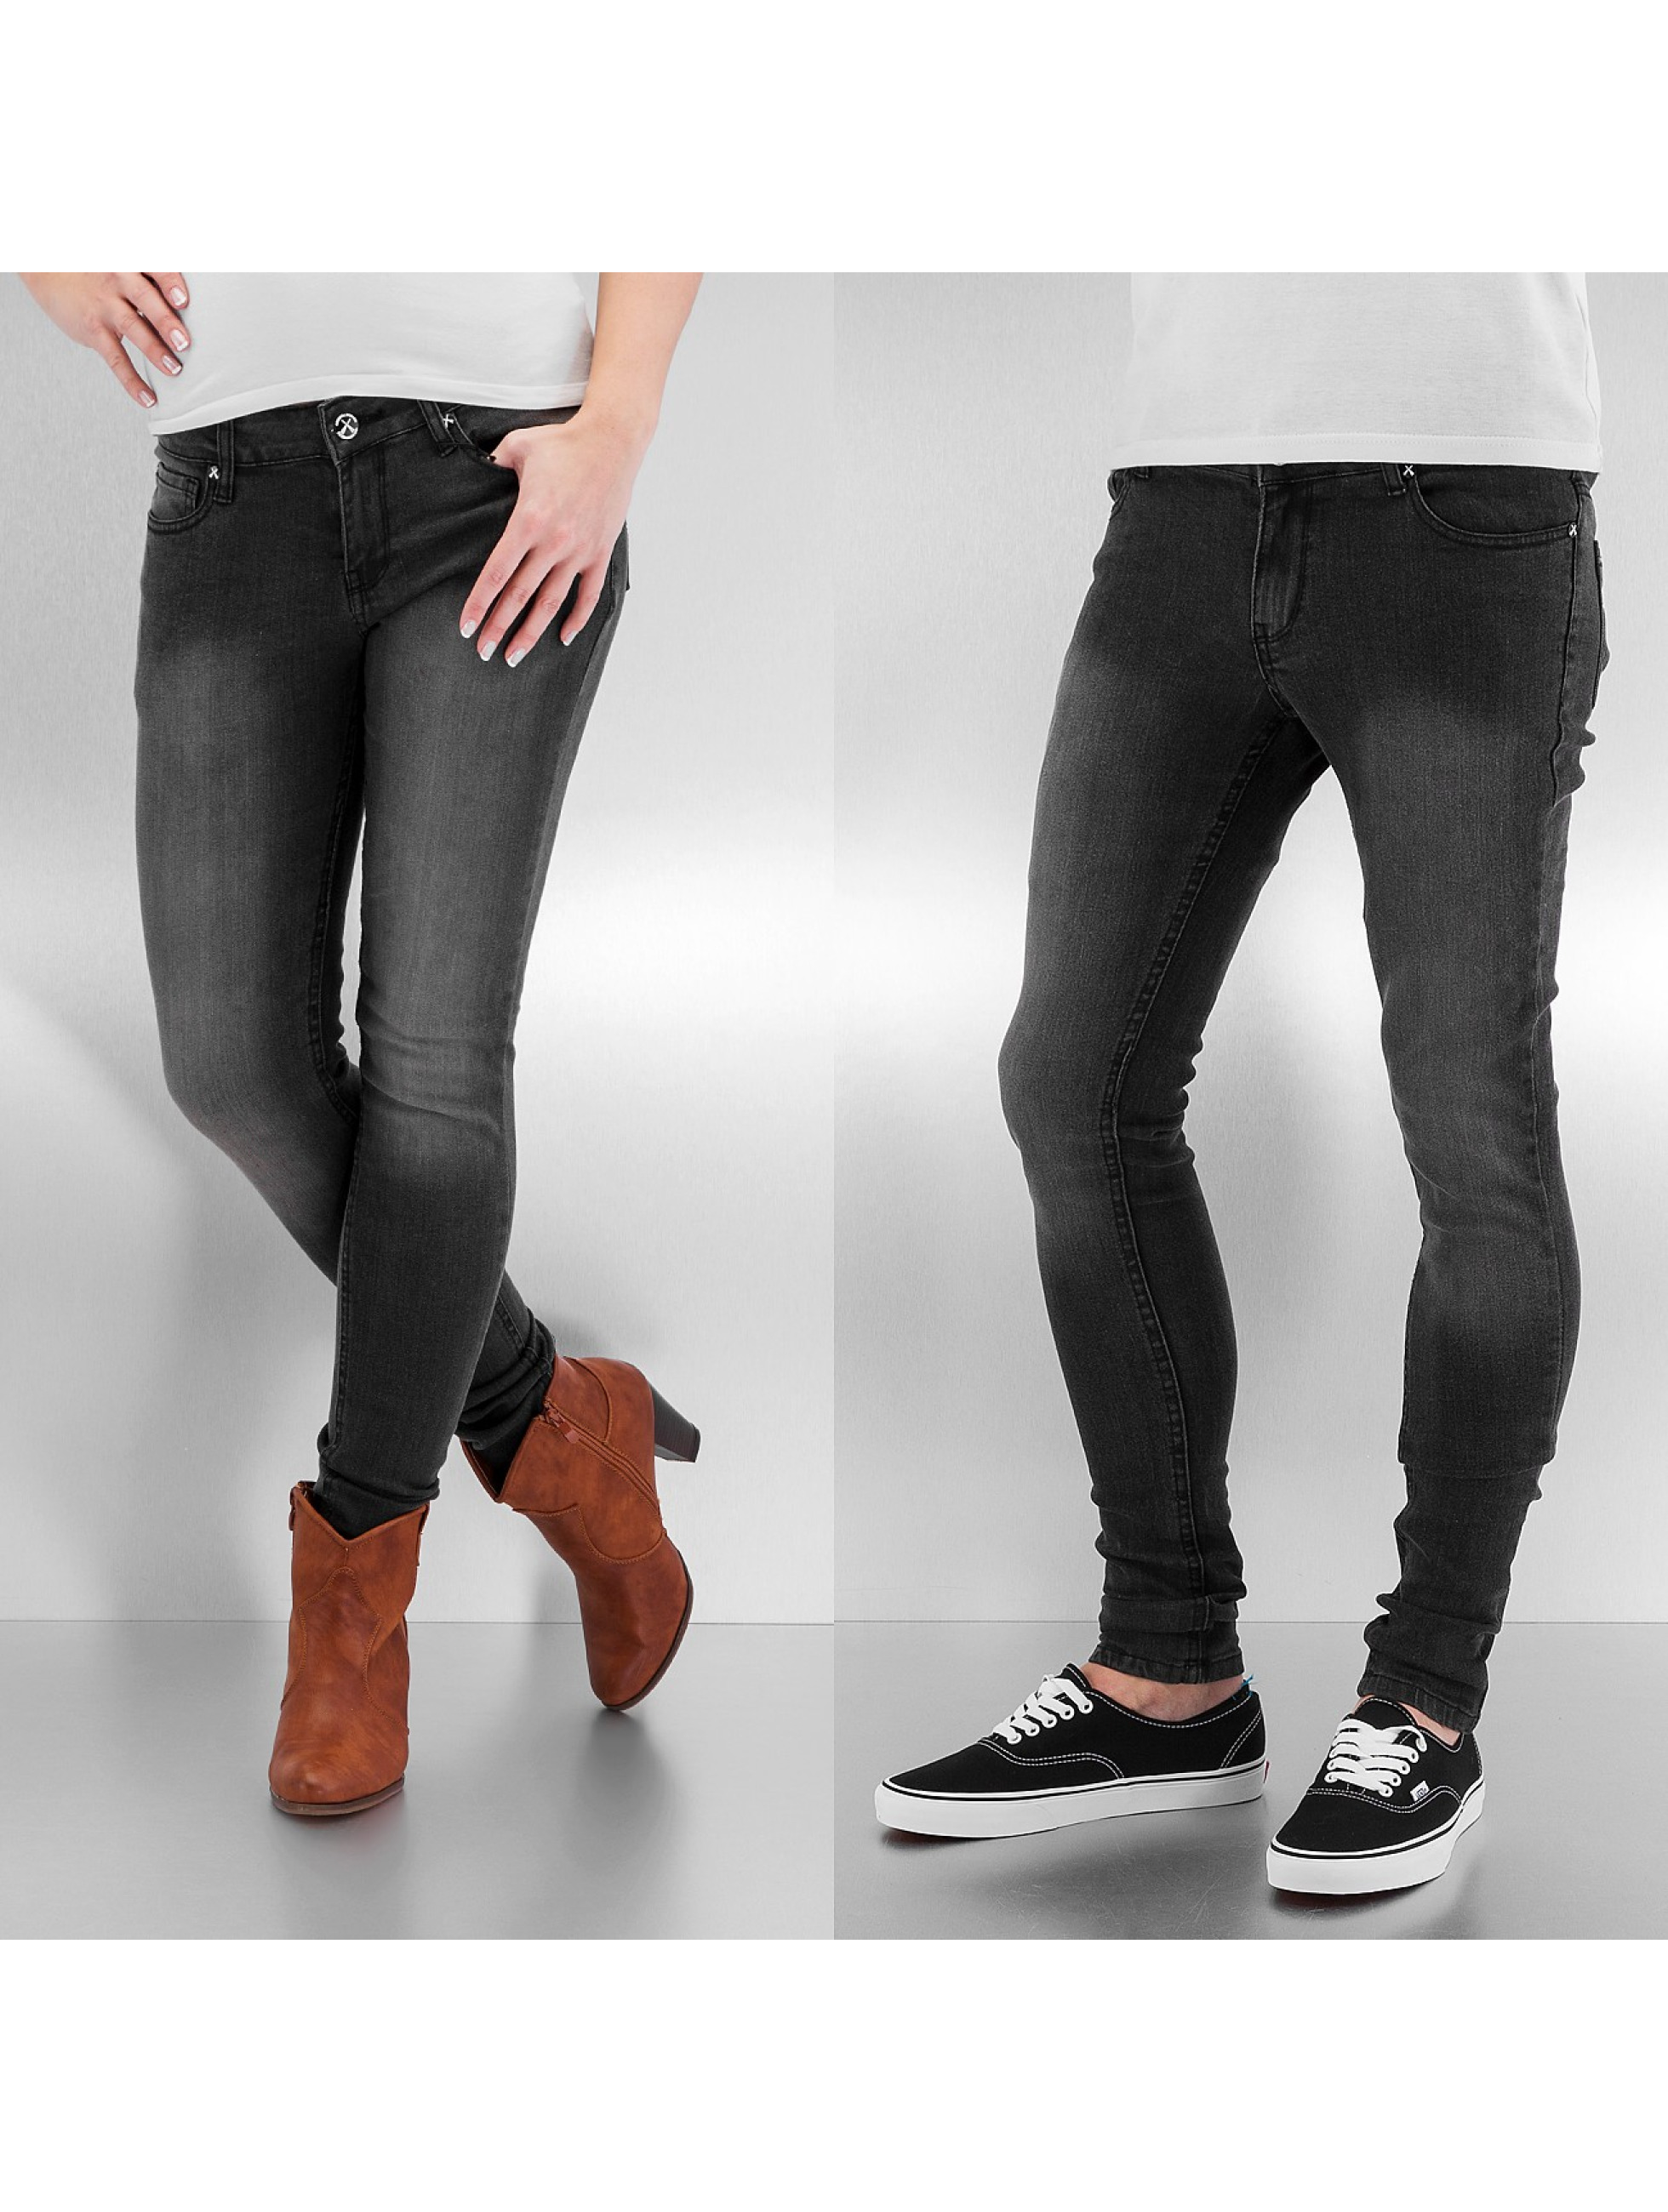 criminal damage herren jeans skinny jeans super ebay. Black Bedroom Furniture Sets. Home Design Ideas